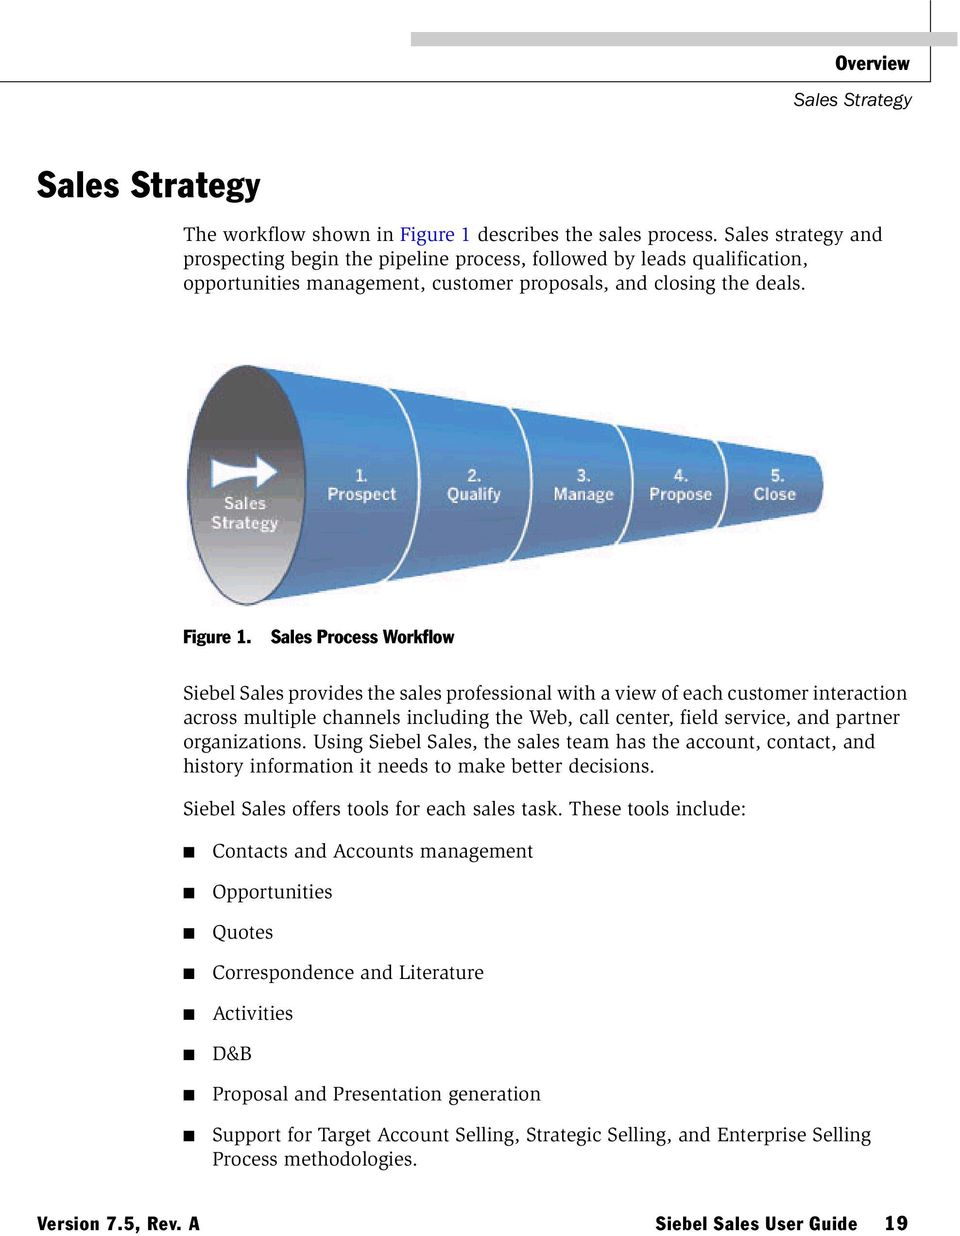 Sales Process Workflow Siebel Sales provides the sales professional with a view of each customer interaction across multiple channels including the Web, call center, field service, and partner